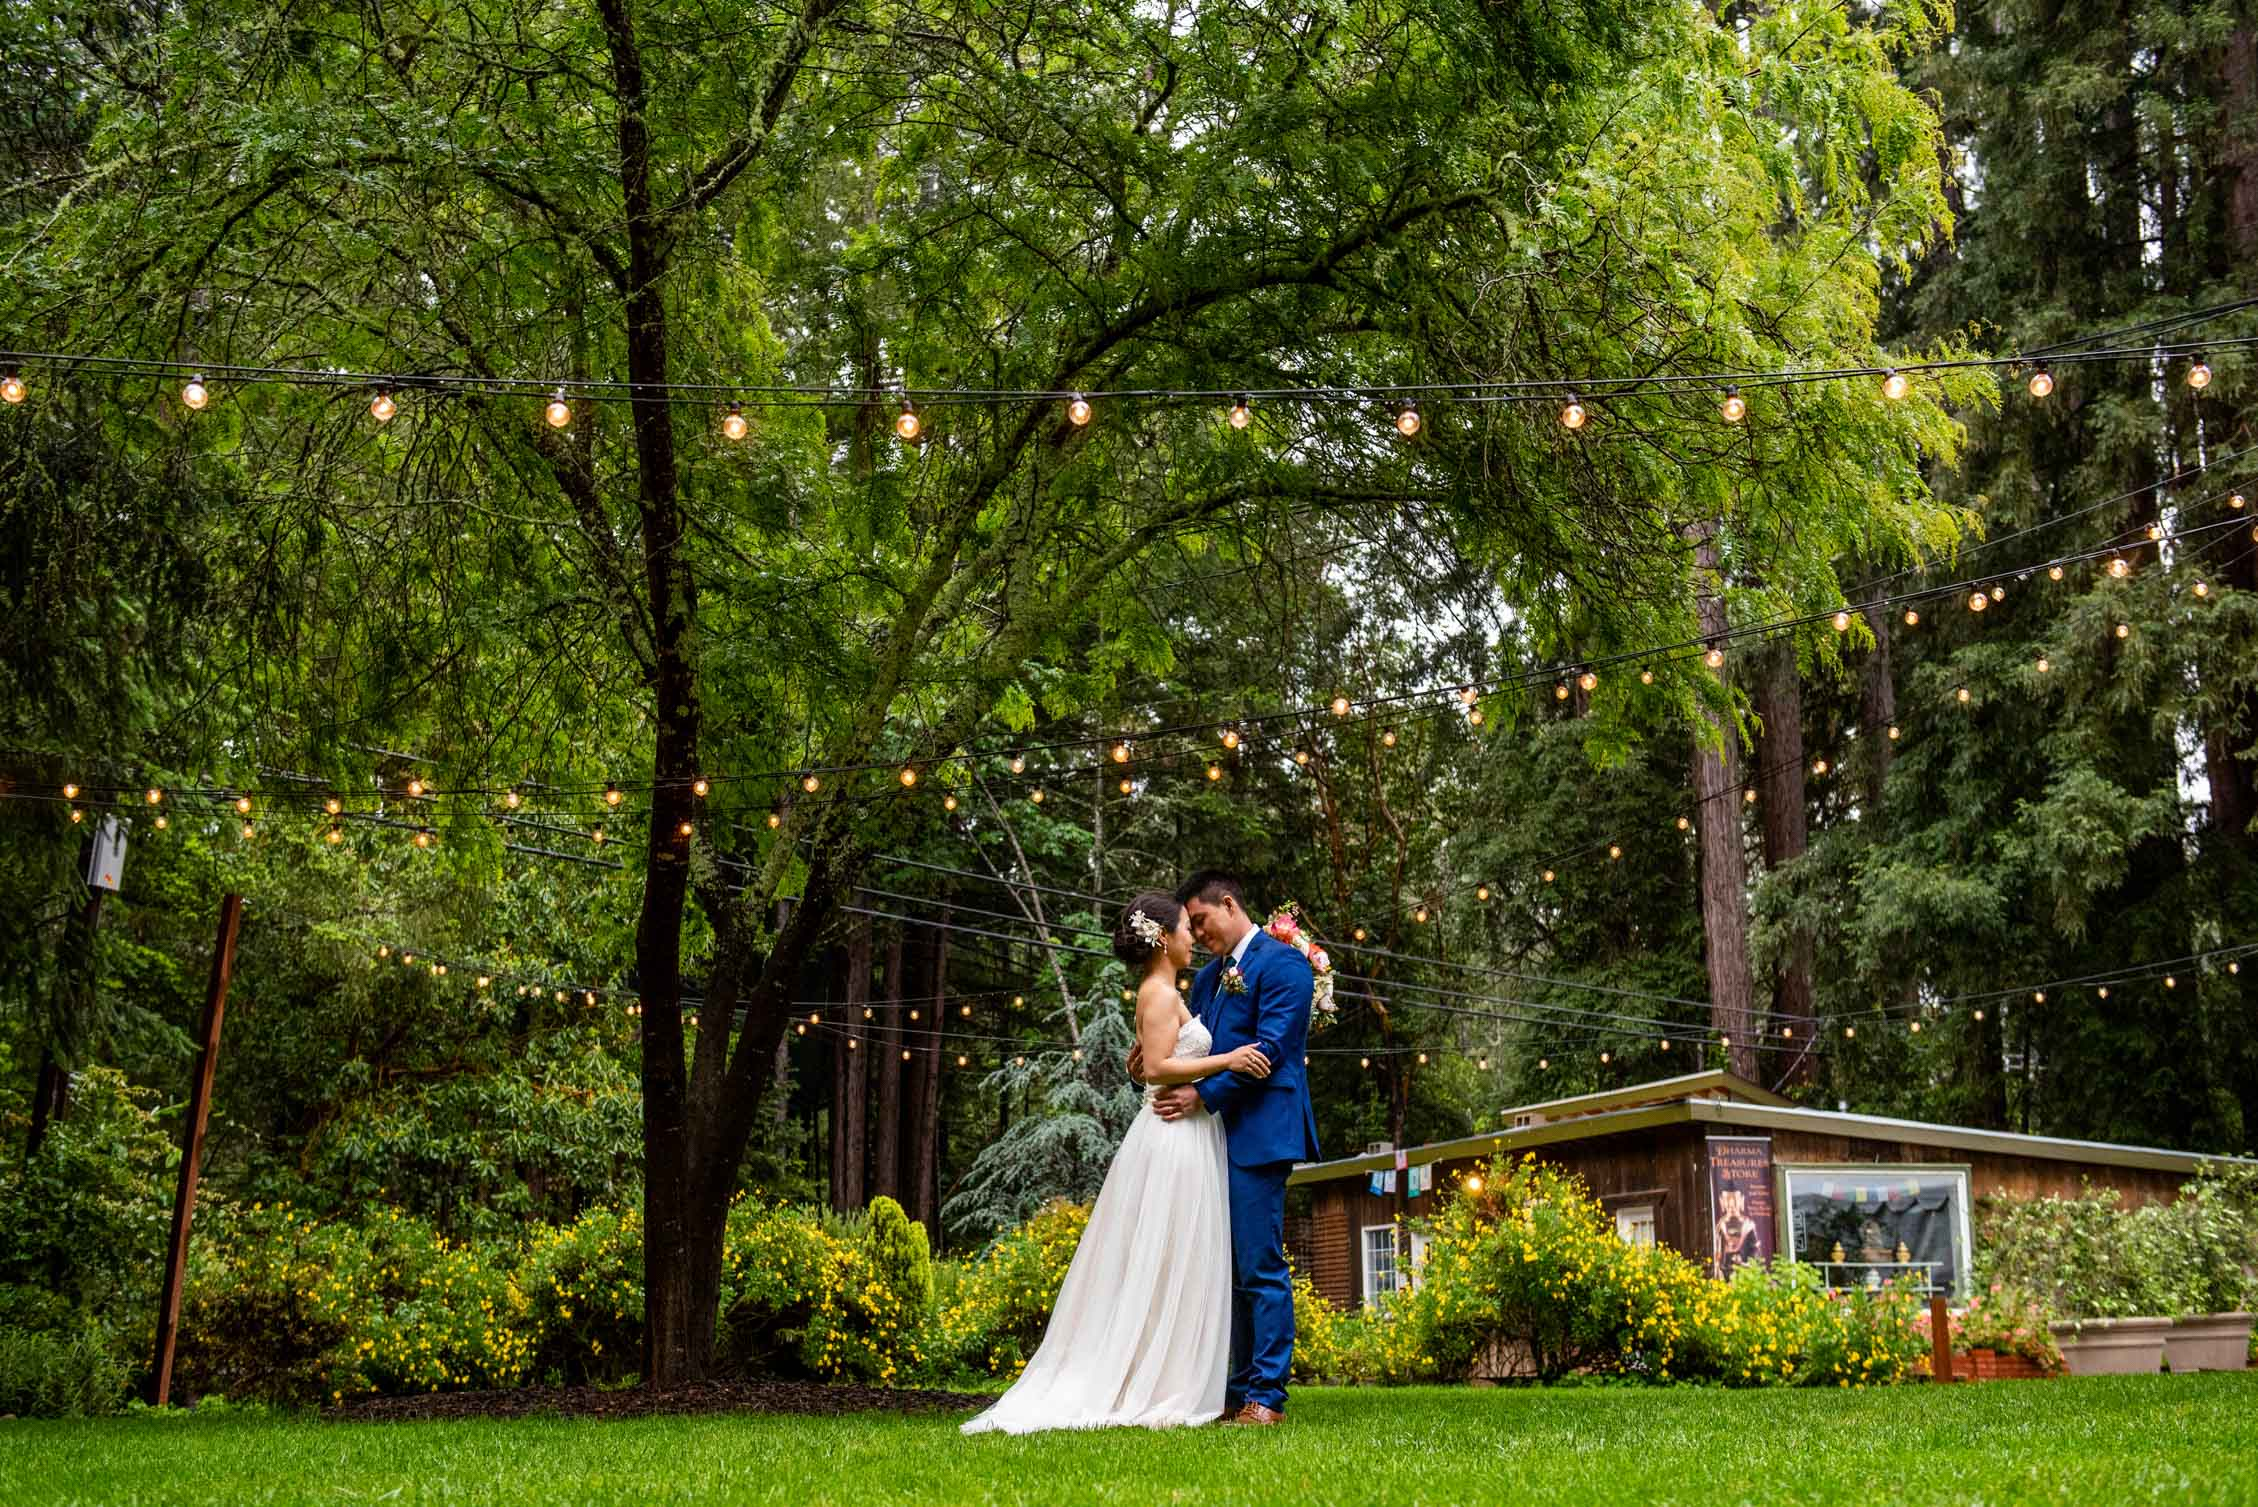 Bride and Groom with green grass and trees in redwood forest